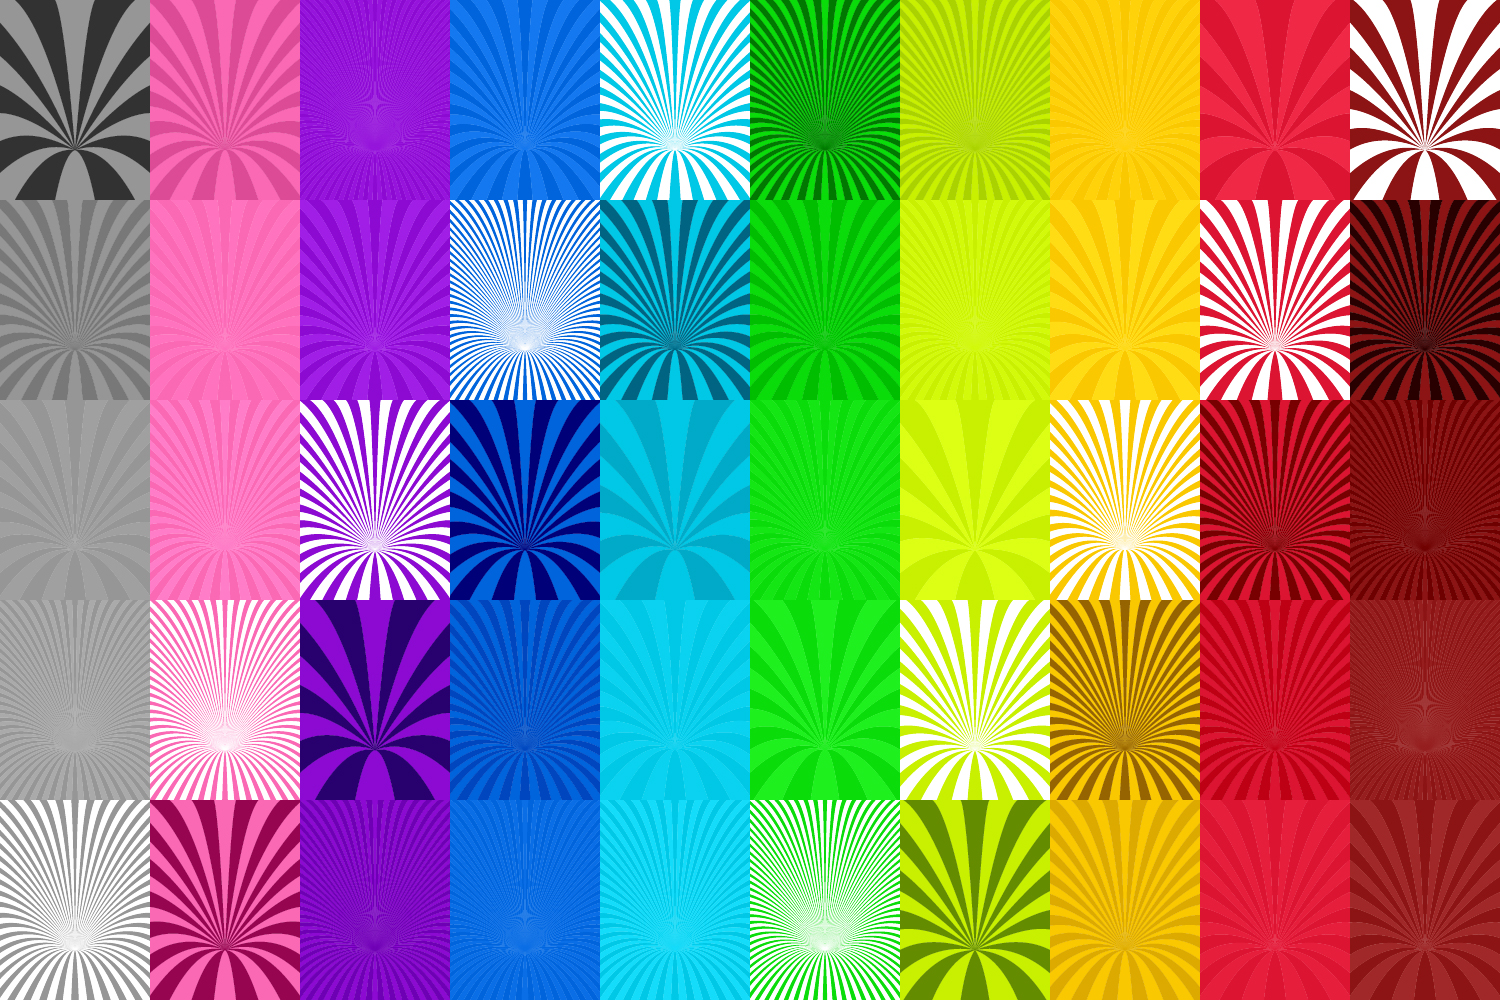 50 Curved Backgrounds AI, EPS, JPG 5000x5000 example image 4